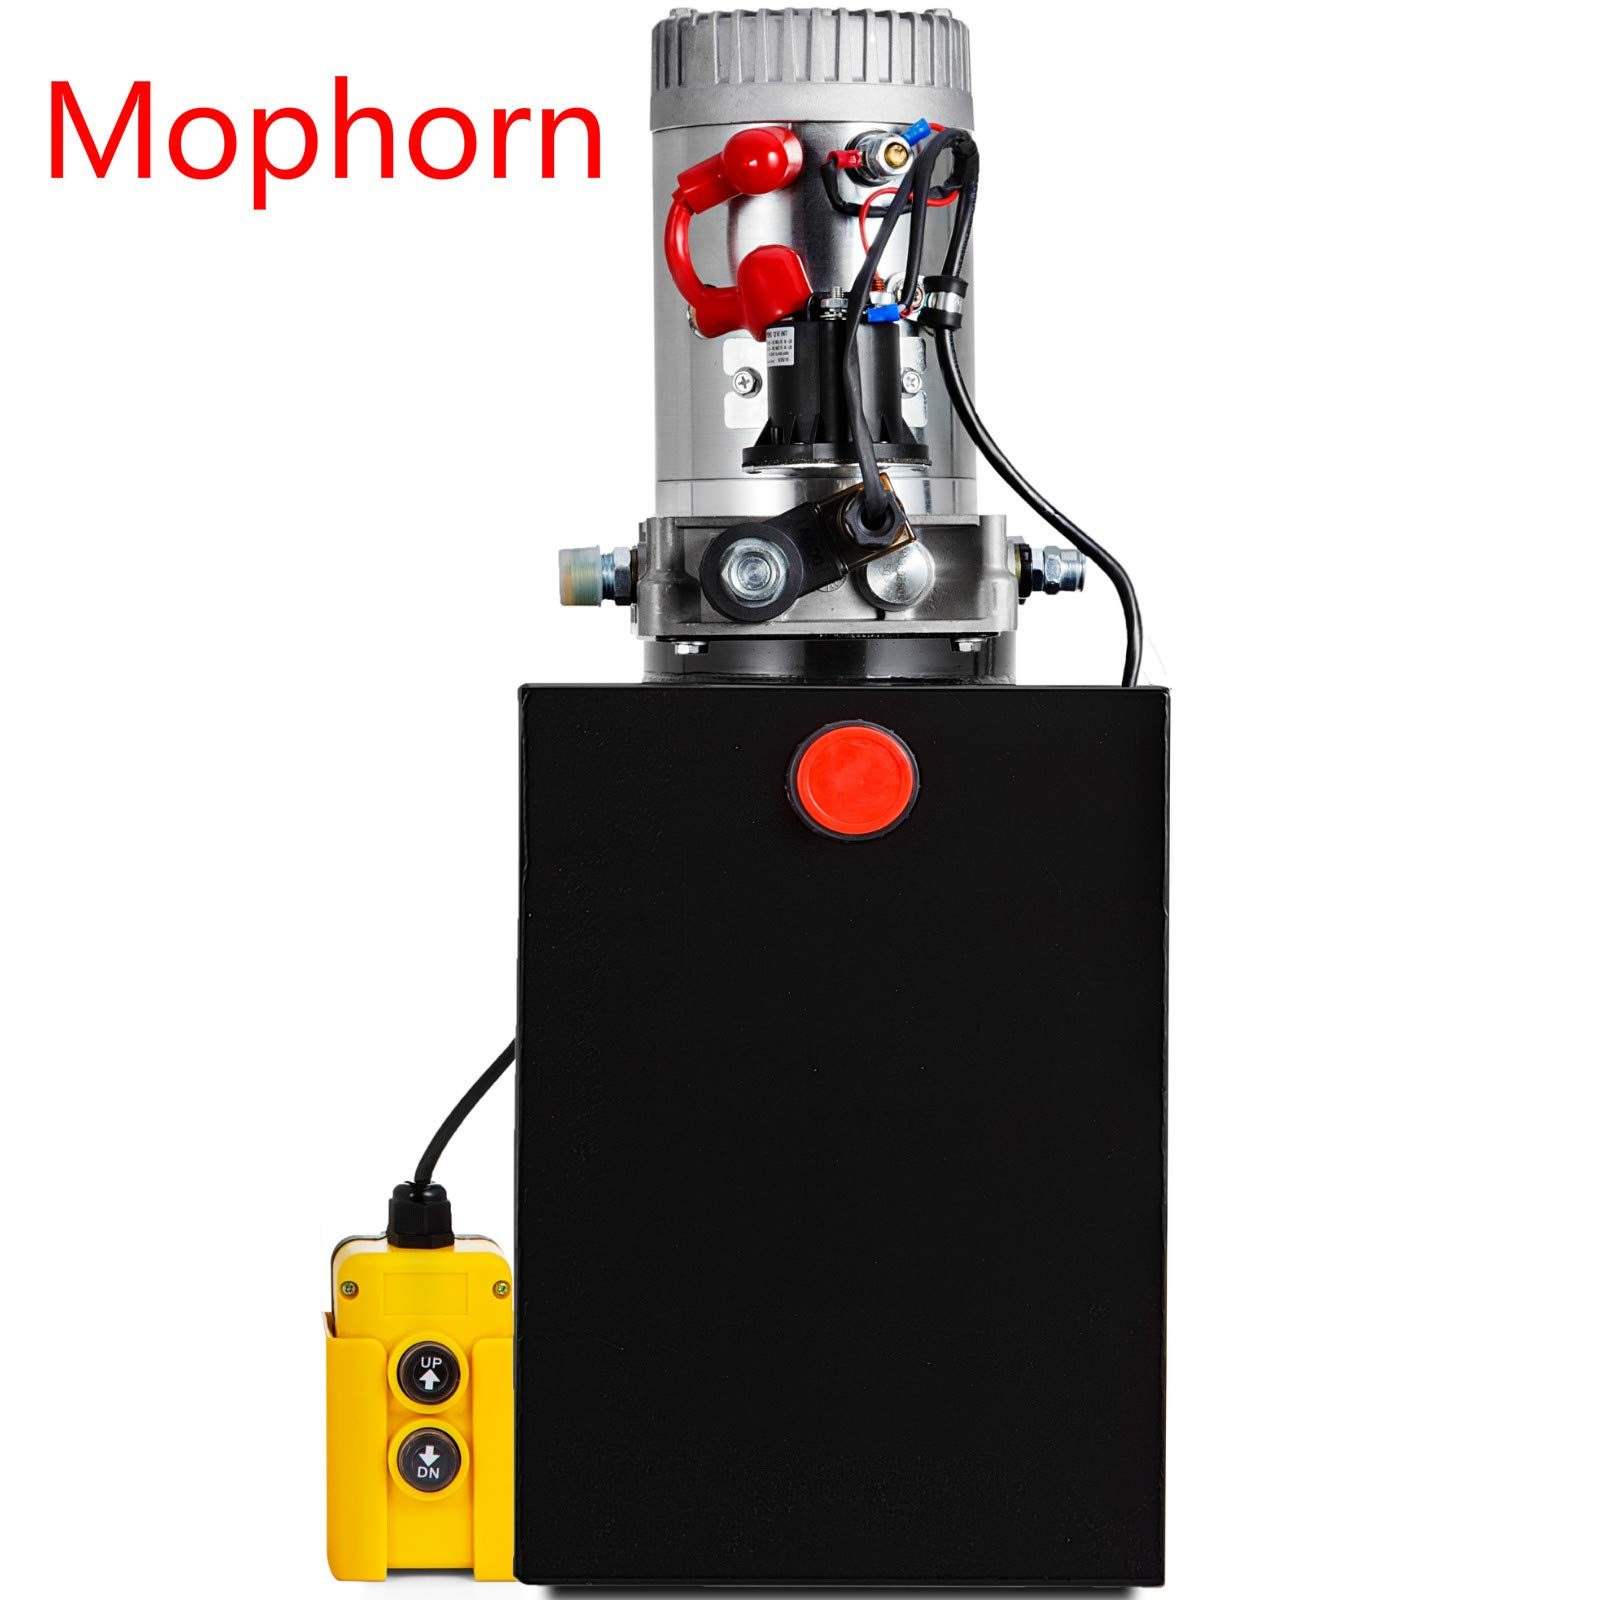 Mophorn 12V Single Acting Hydraulic Pump with 13 Quart Steel Reservoir, 3200PSI Hydraulic Power Unit with Control Remote to Lift Dump Trailer Tipper Trailer Gates Tow Trucks Car Haulers Wreckers